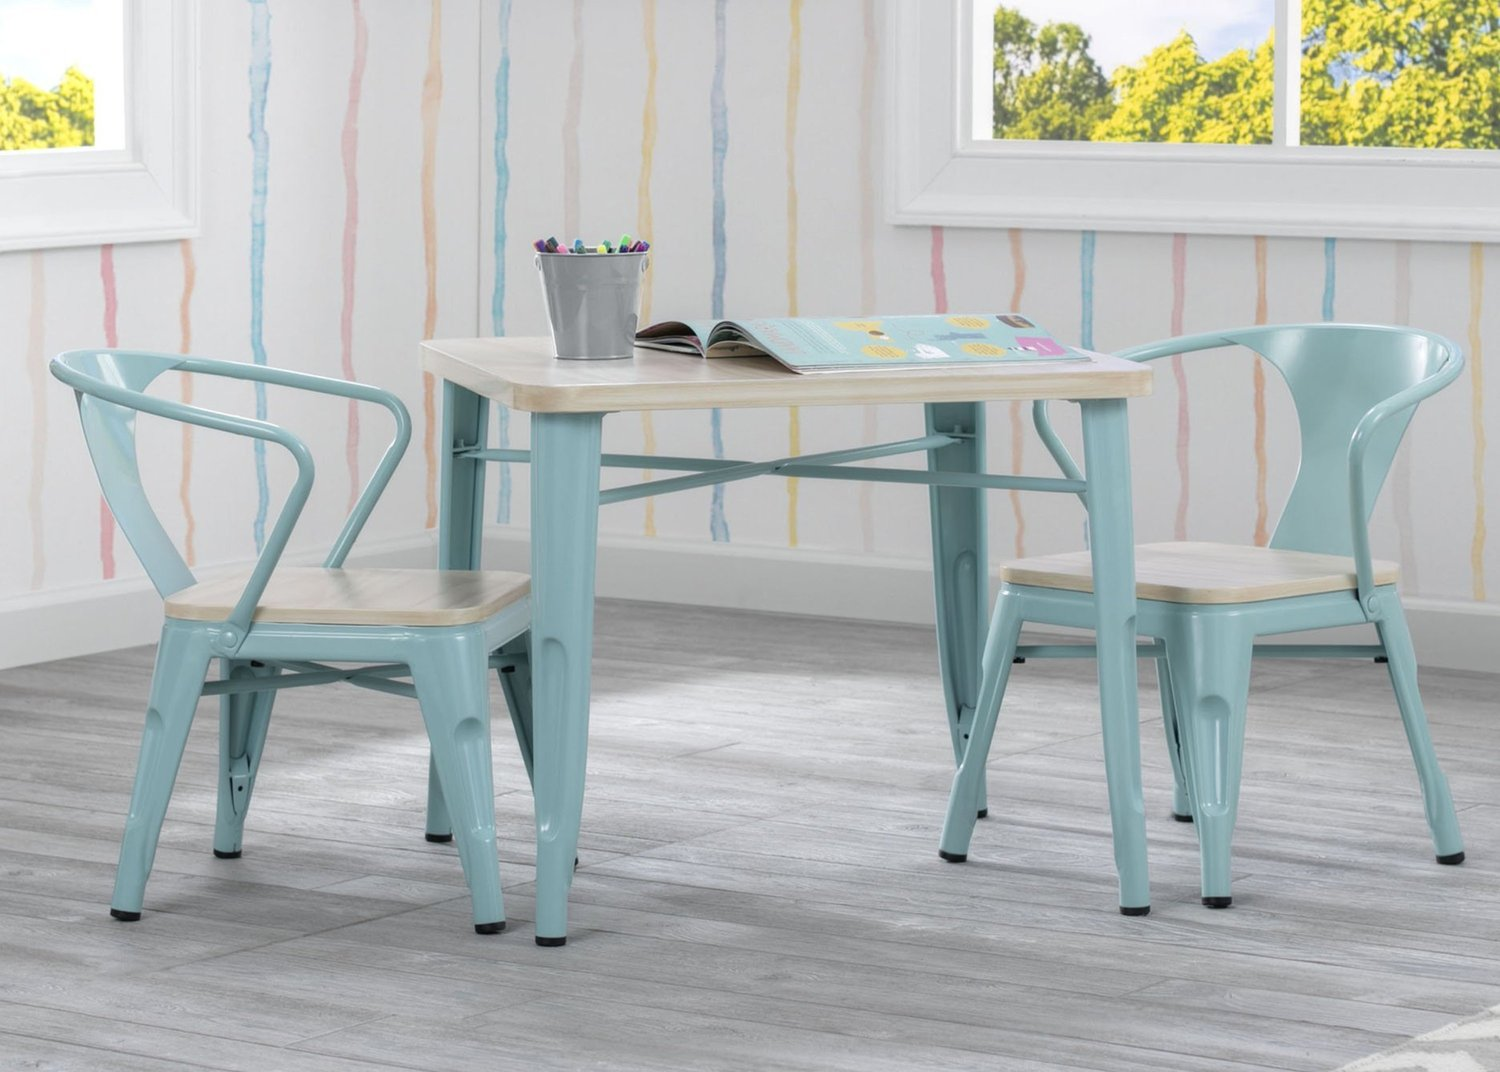 Delta Bistro Kids Table and Chair Set in Aqua and Natural